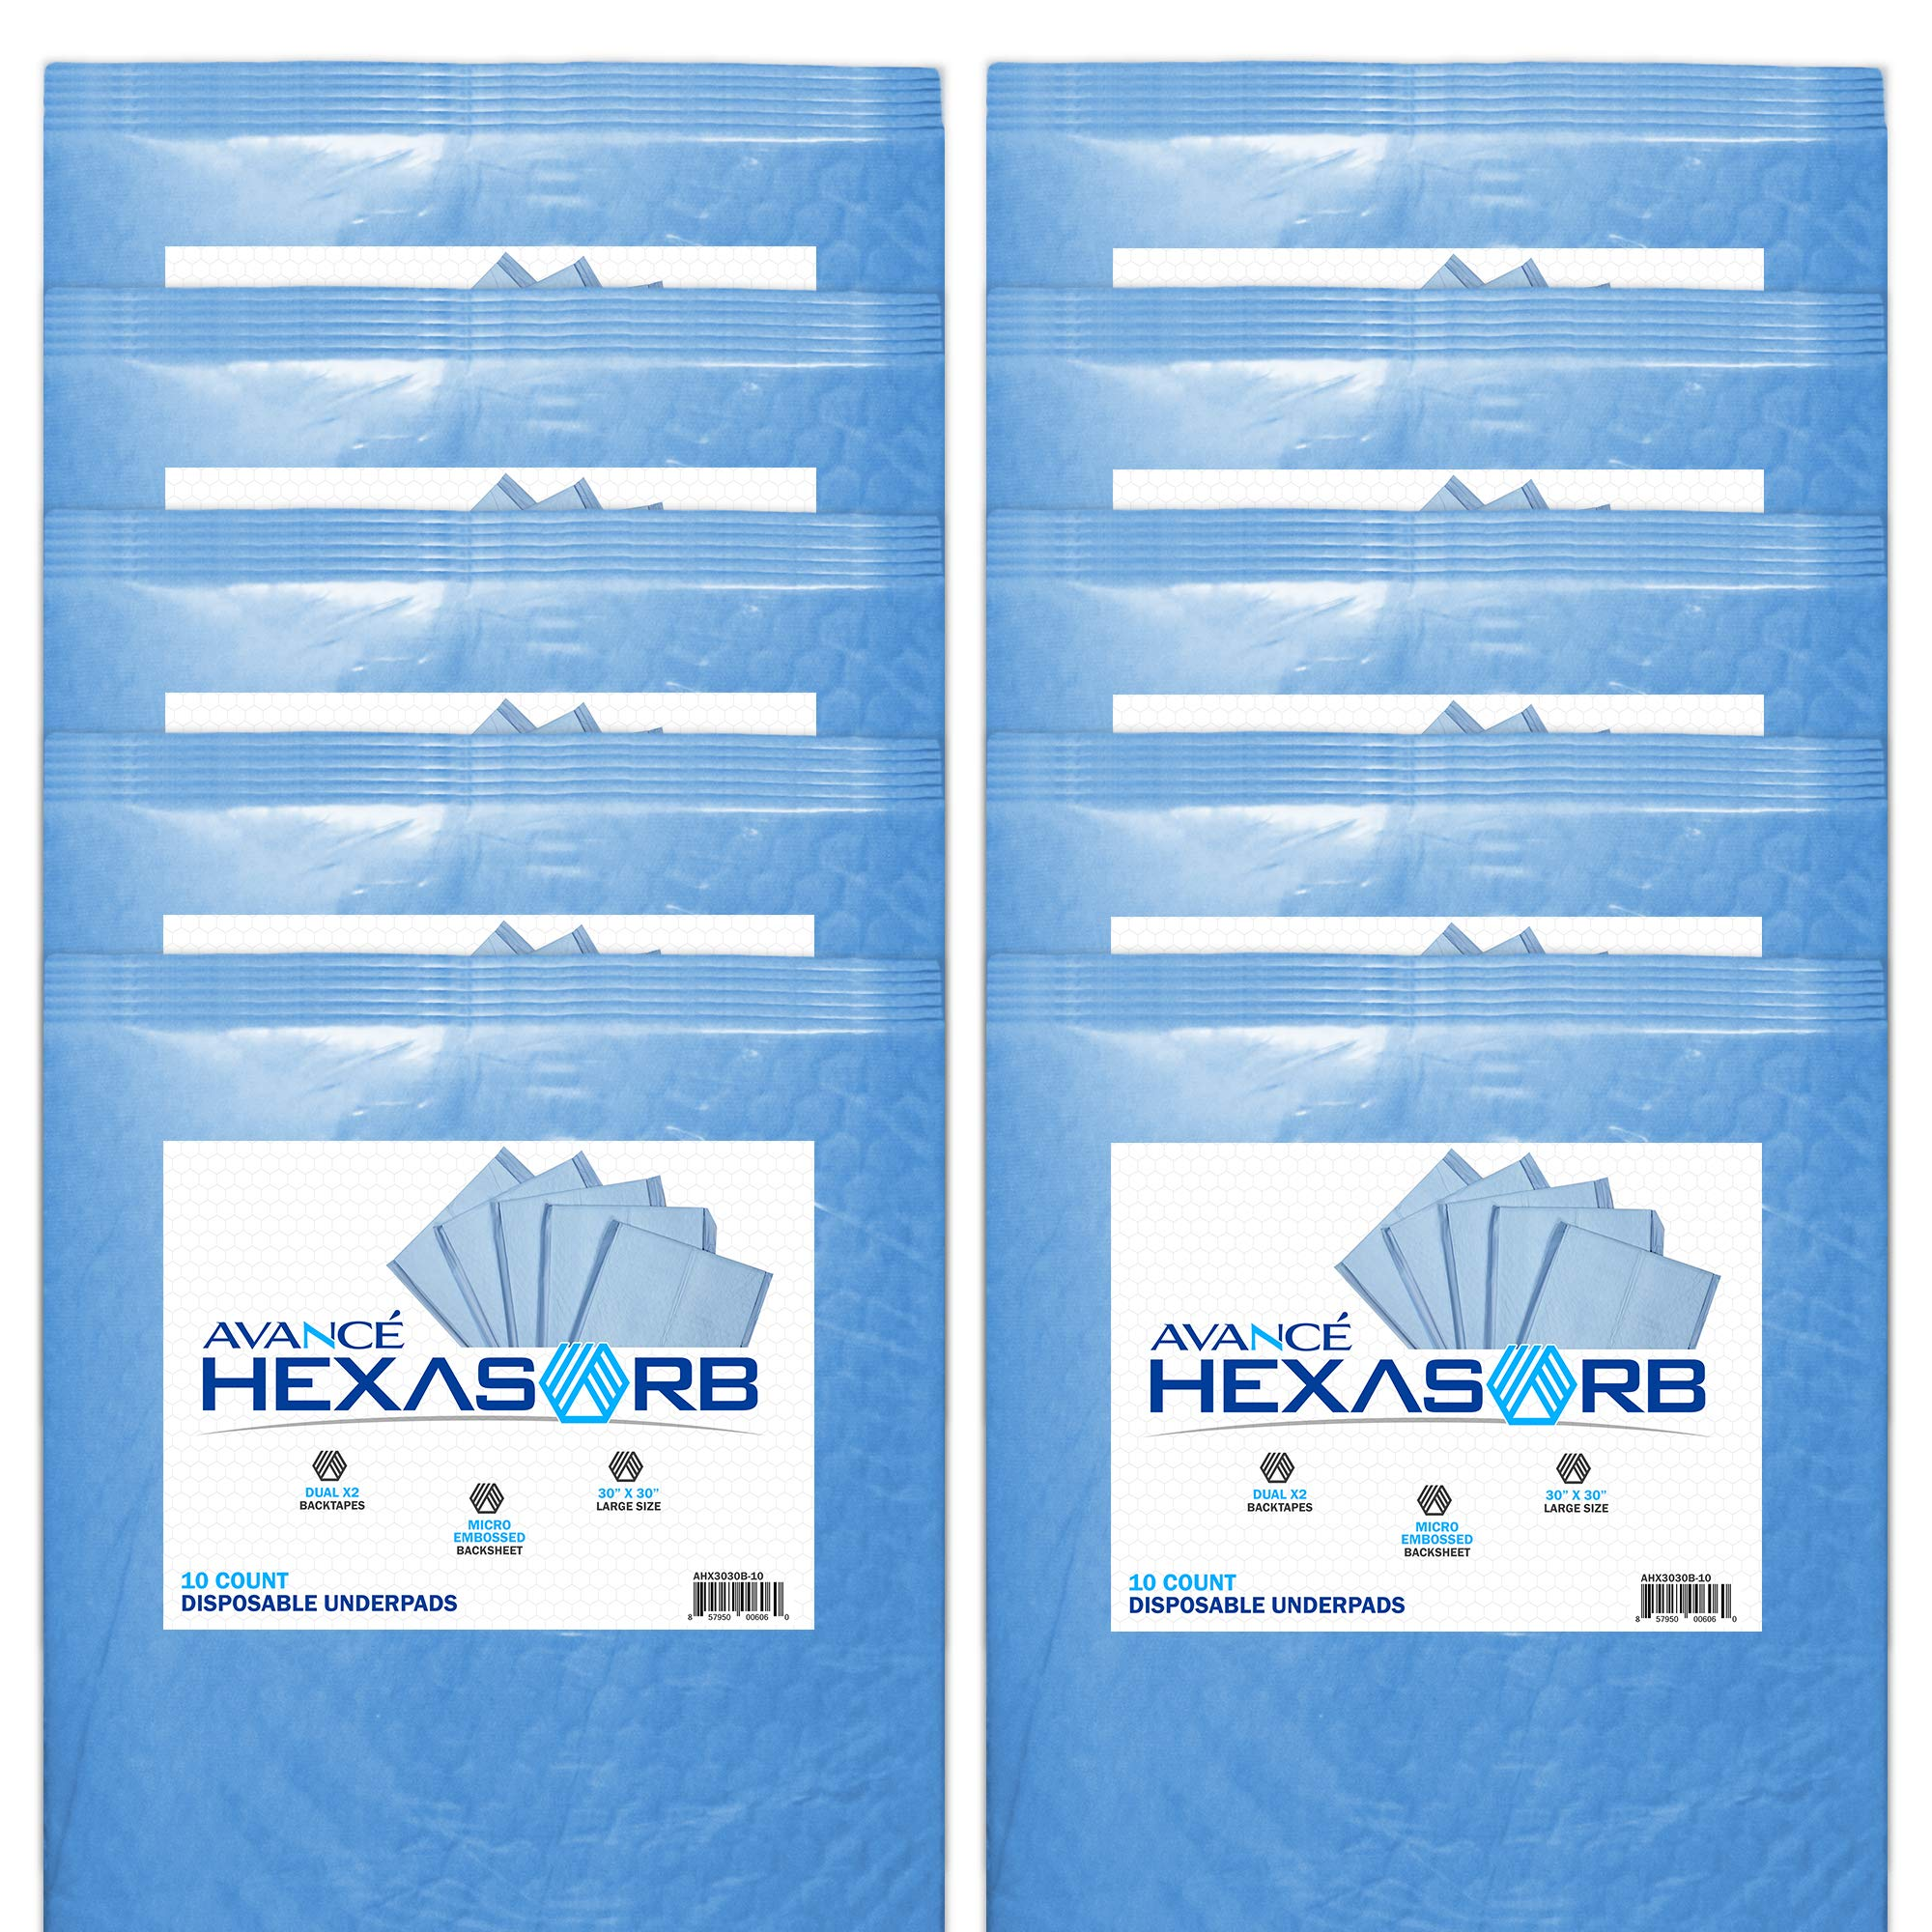 Hexasorb Disposable Underpads 30 x 30 Inch Hospital Blue Heavy Absorbency Quilted Fluff Polymer Core with Dual Peelable Release Tapes, 1800mL Absorption Capacity, 10-Pack (100)